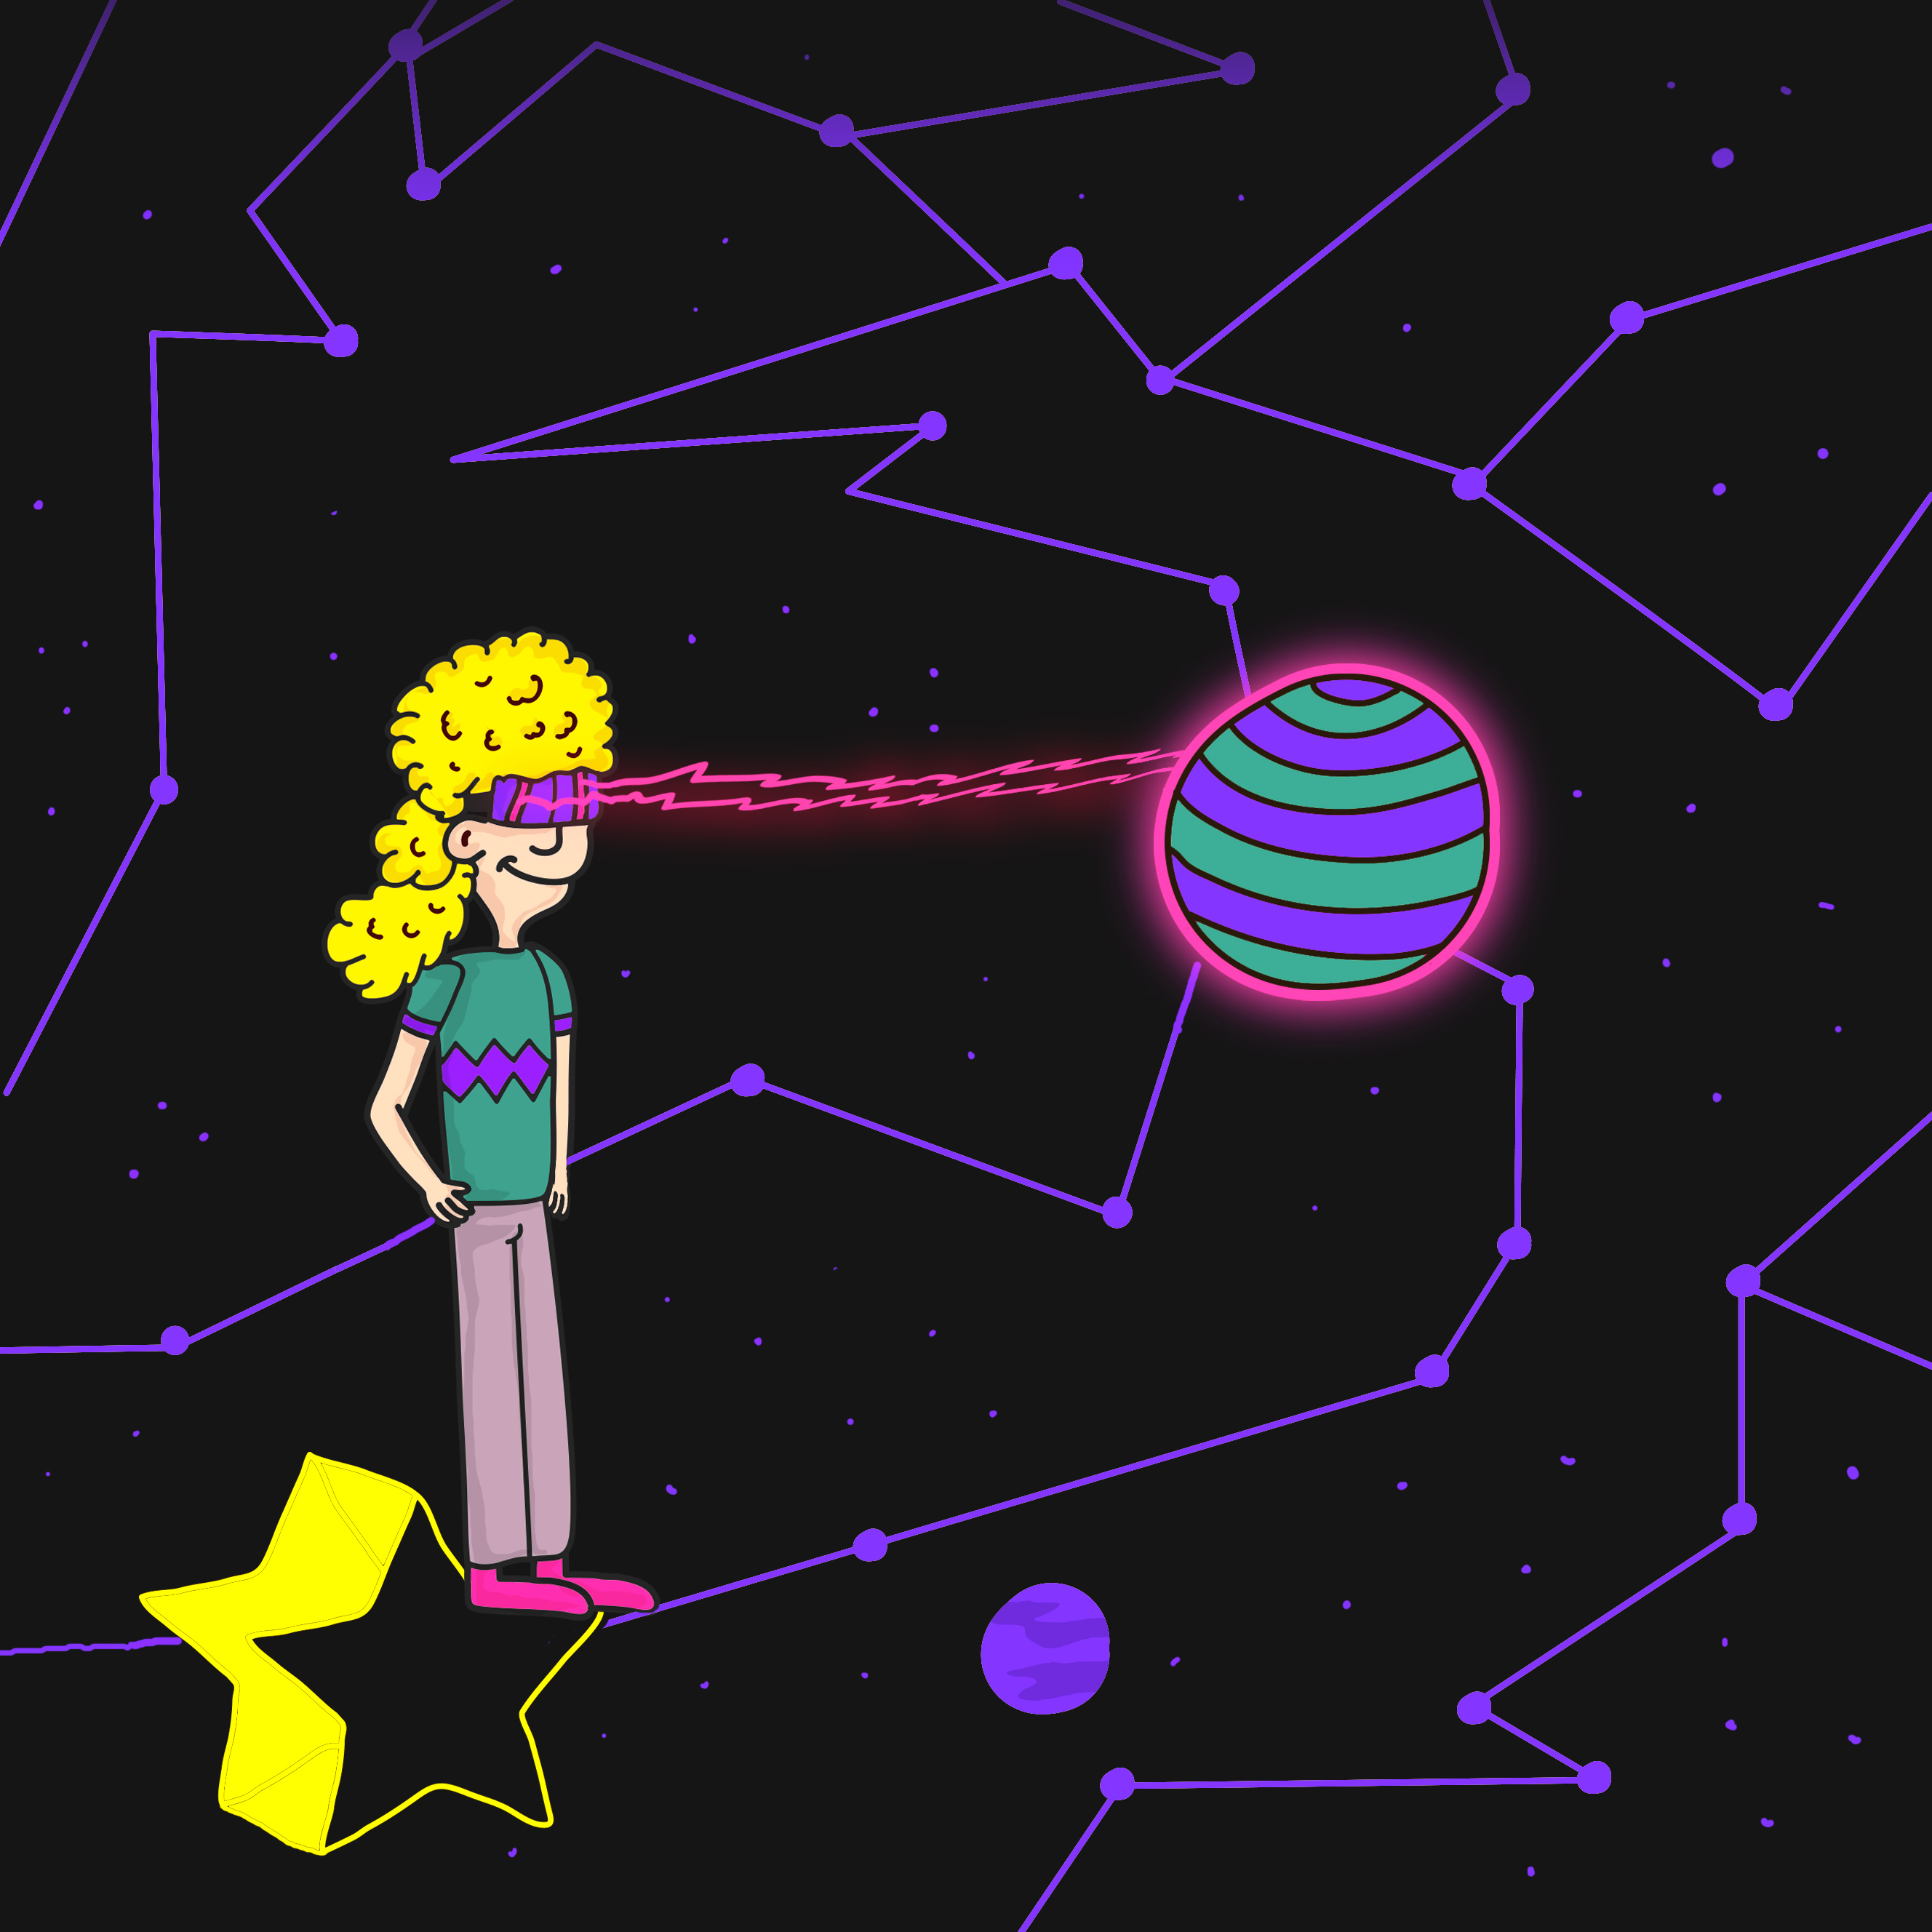 """The universe"" Robert traveled 4.3 light years away until he finds his favorite star. When he learned how to use his Gamma Ray glasses he could finally create his own constellation. This took him to the most shining and strong star in the galaxy called Phoenix. From above, he observed an infinite number of worlds simply because there is an infinite amount of space for them to be. However, he realized that not all of them are inhabited. He had to travel the universe, discover the truth and find his own tribe."